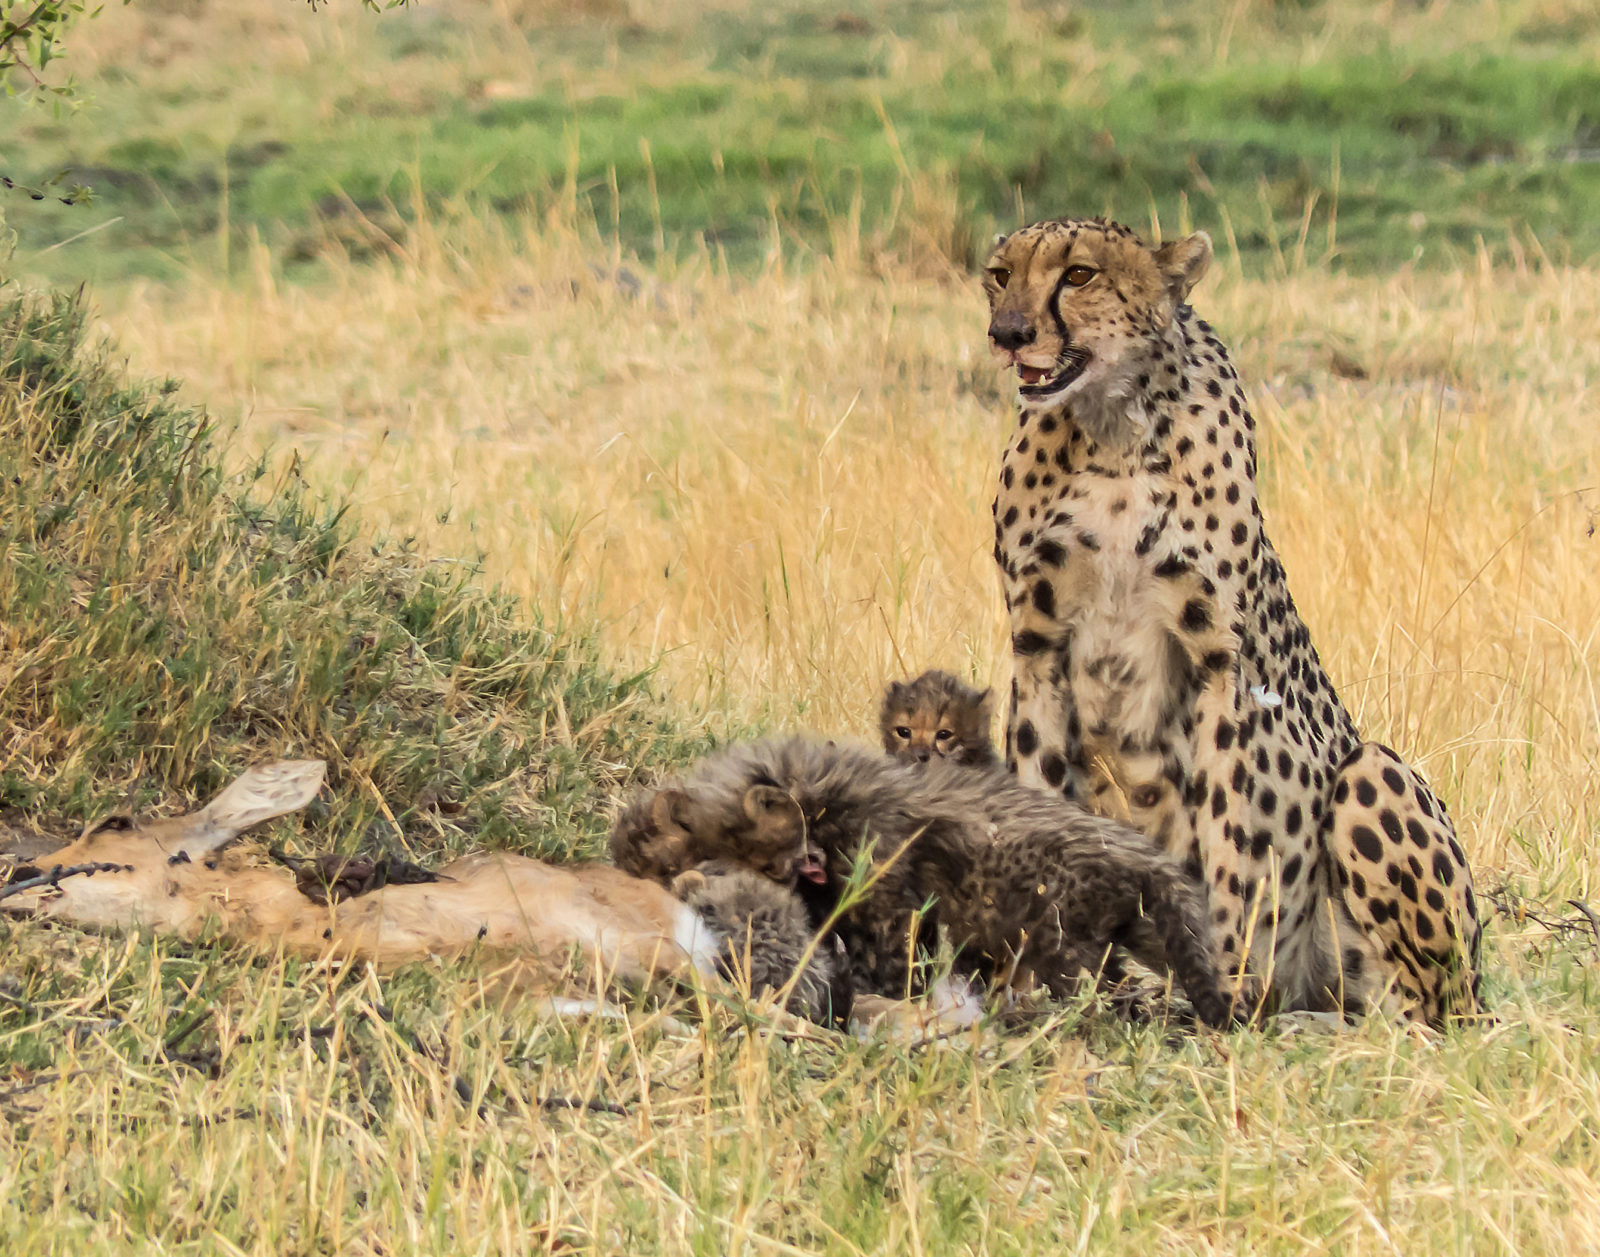 Cheetah with Cubs on a Kill